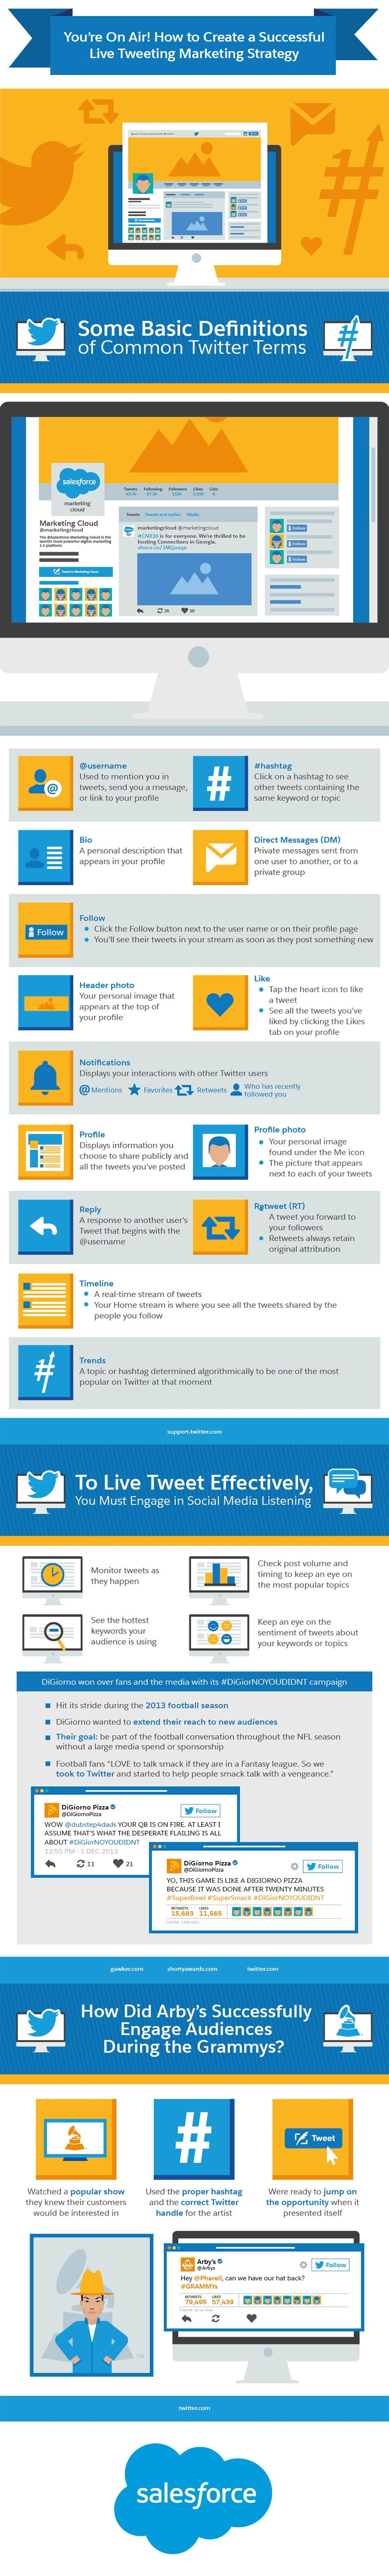 You're On Air! How to Create a Successful Live Tweeting Marketing Strategy - infographic